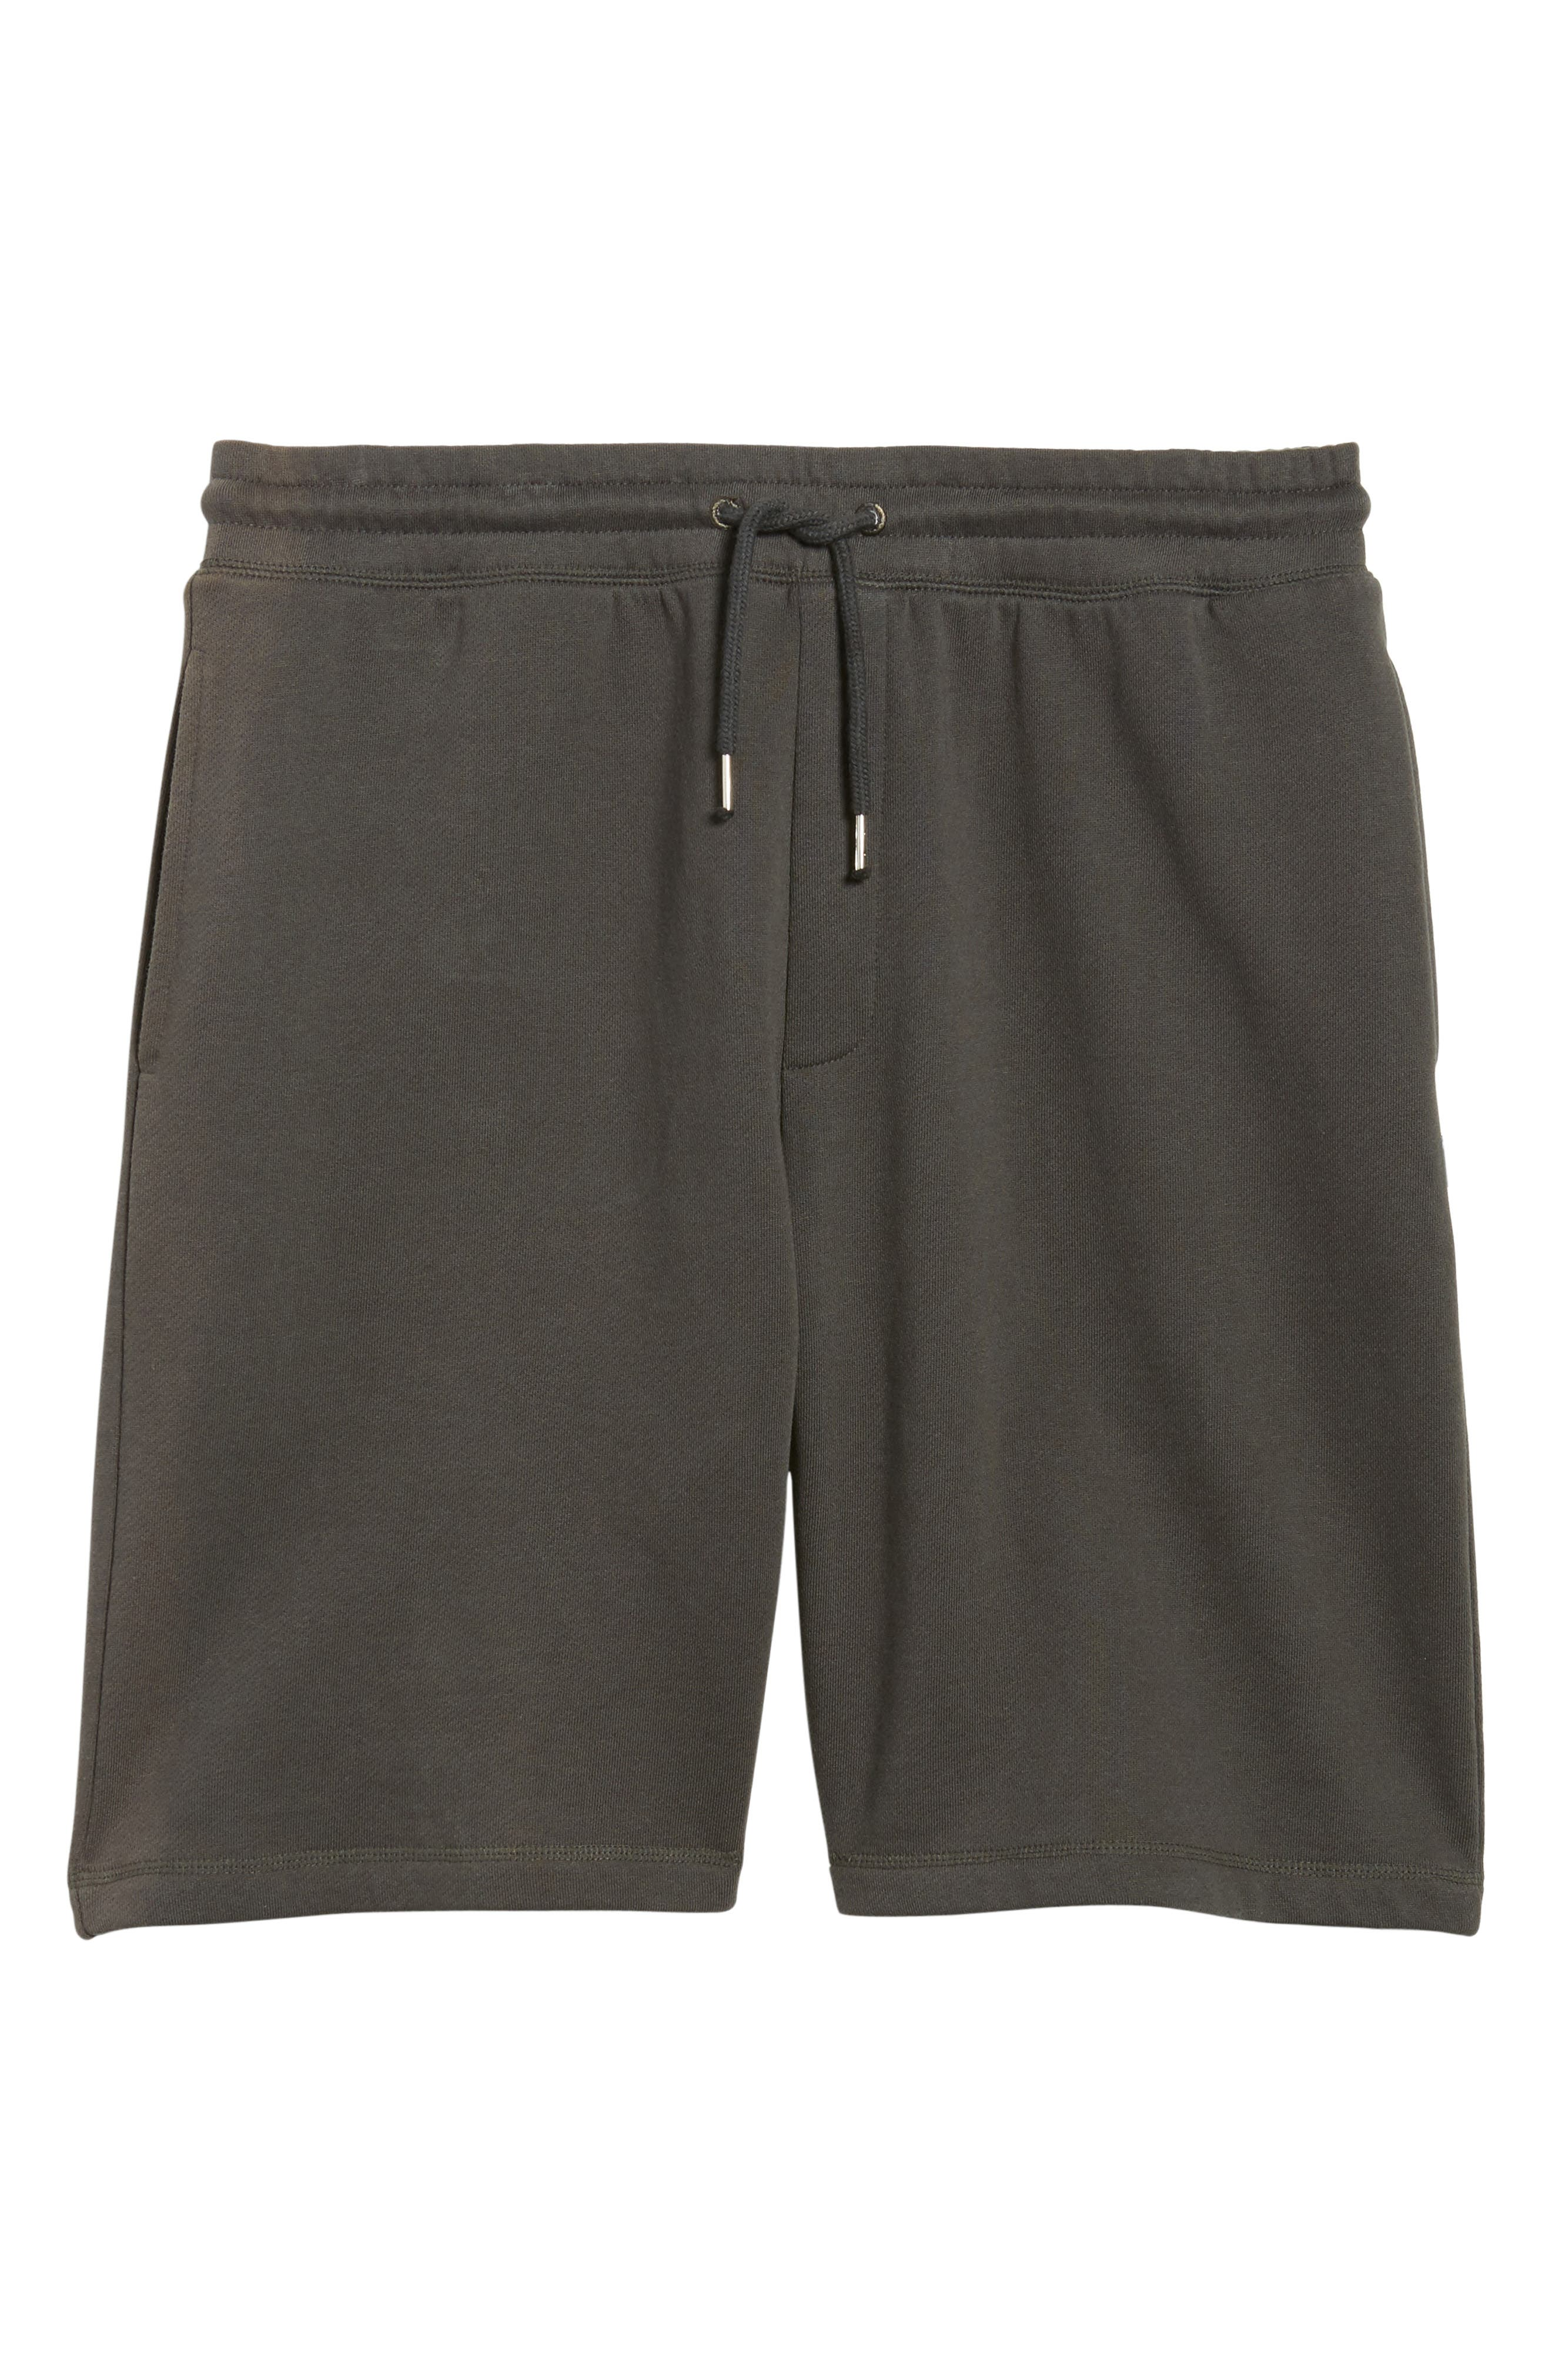 Marty Fleece Shorts,                             Alternate thumbnail 6, color,                             Pirate Black